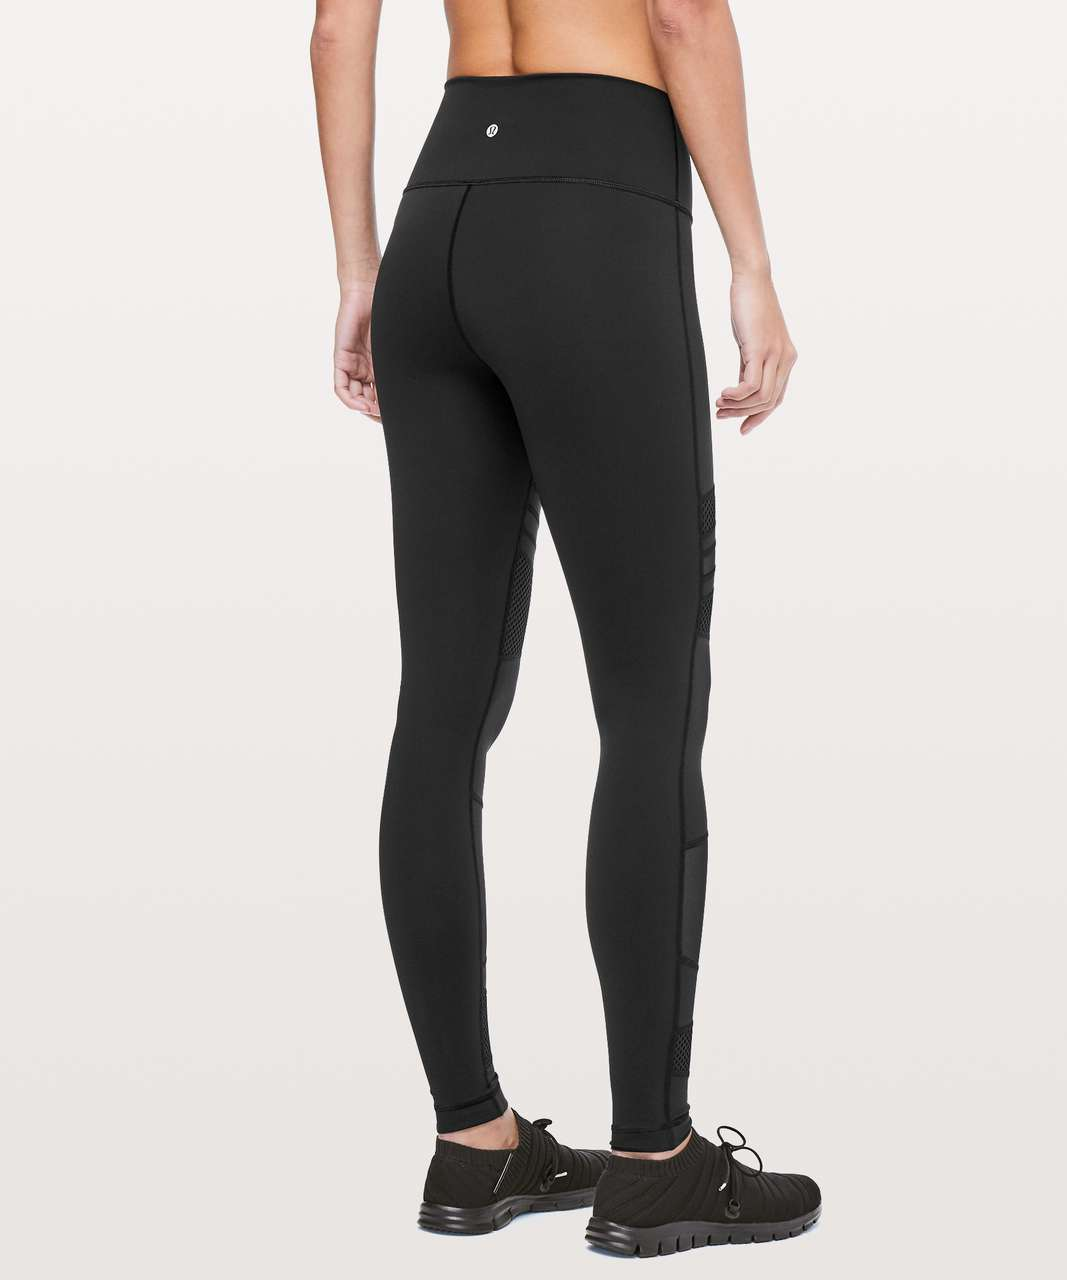 "Lululemon Wunder Under High-Rise Tight *Mix & Mesh 28"" - Black"